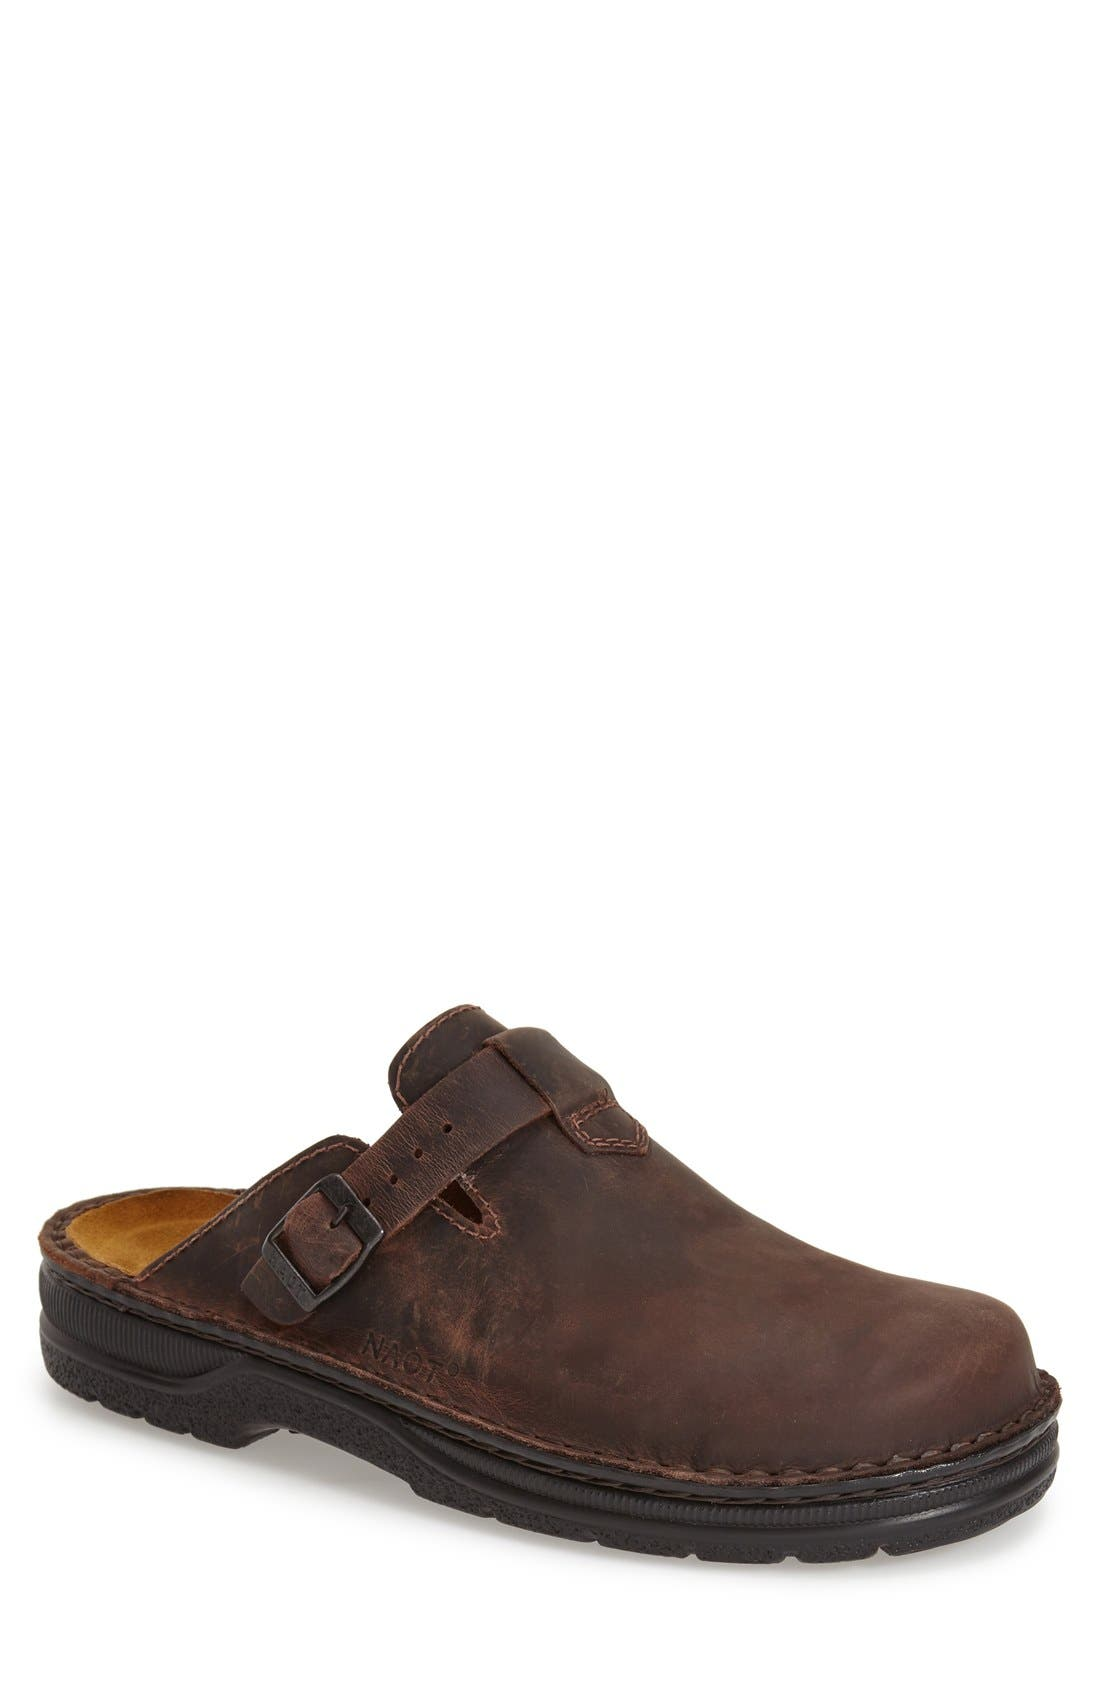 Fiord Clog,                             Main thumbnail 1, color,                             Brown Leather